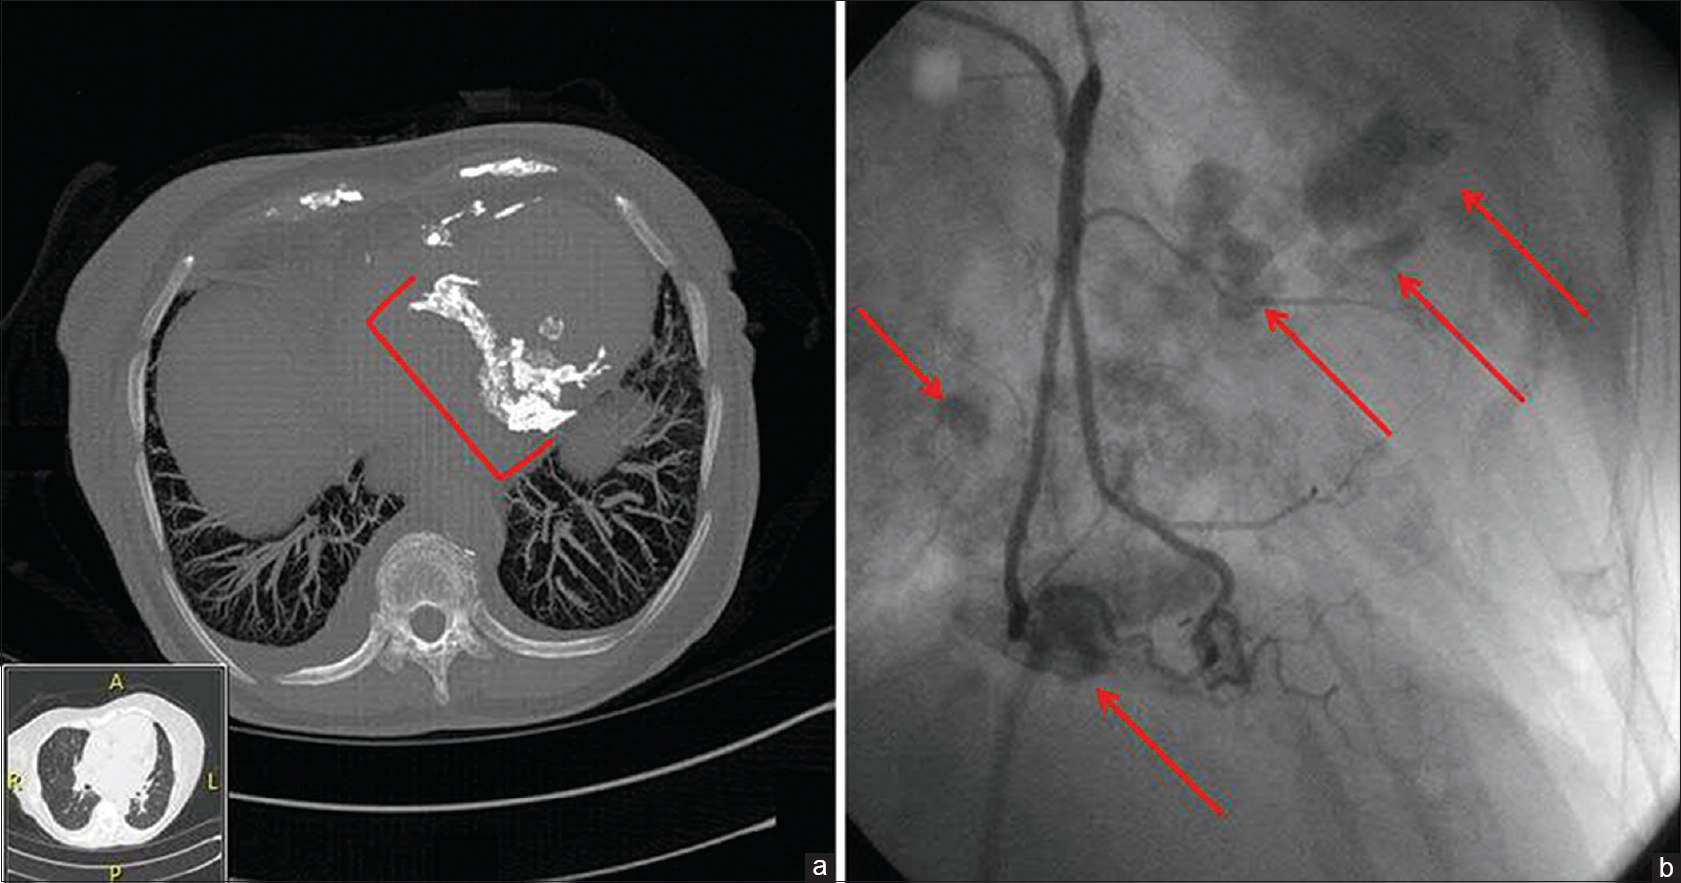 [Figure 1]: (a) Thin-slice computed tomography scan, bone window, displaying exuberant pericardial calcification (bracket). (b) Angiography of the right coronary artery confirms extensive irregular calcium deposits along the pericardium (arrows)